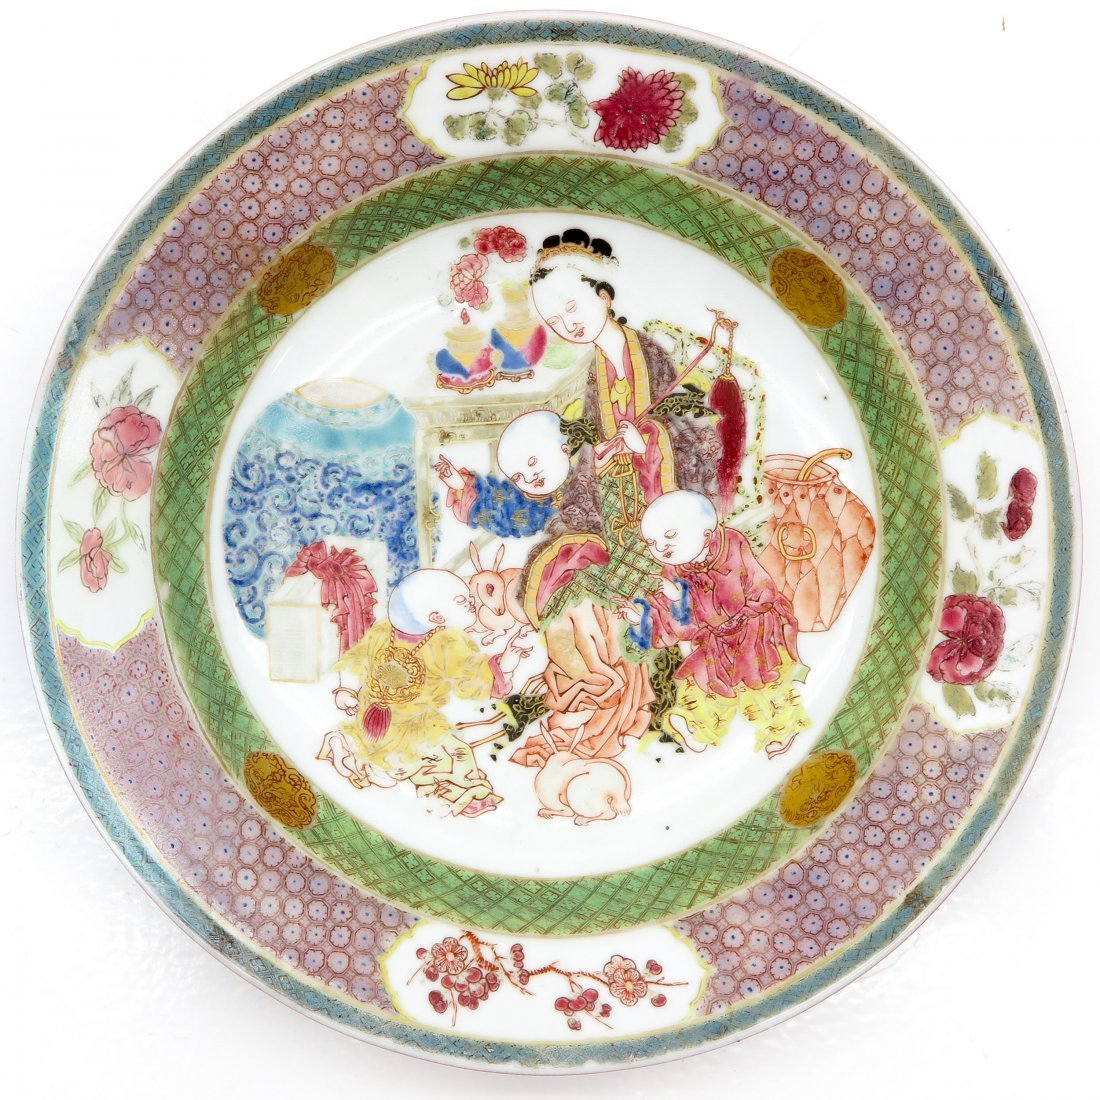 18th/19th Century China Porcelain Plate with Ruby Back